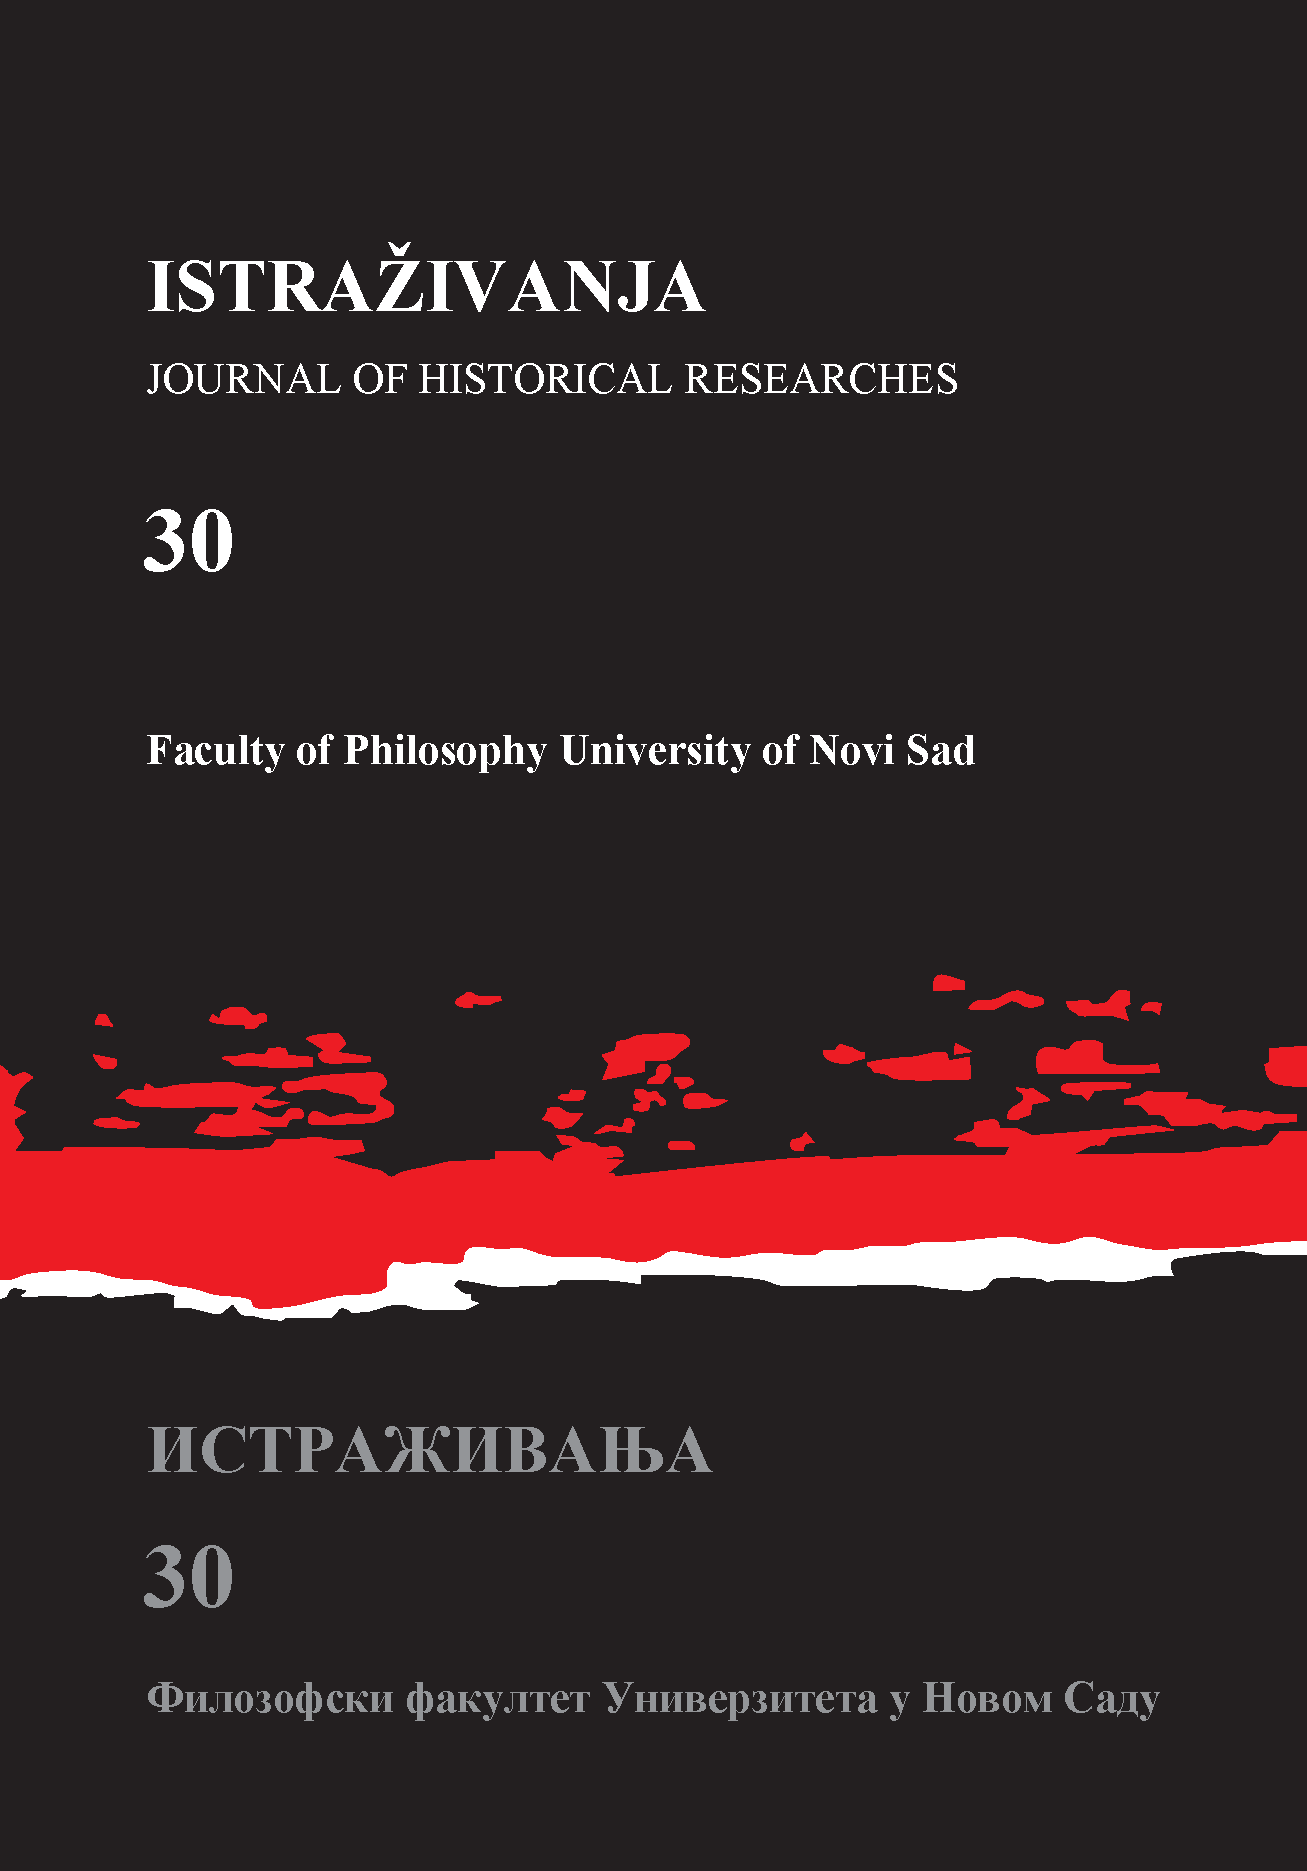 HISTORIOGRAPHICAL WORK OF SIMEON PIŠČEVIĆ: BETWEEN CENTRAL EUROPE AND RUSSIA Cover Image